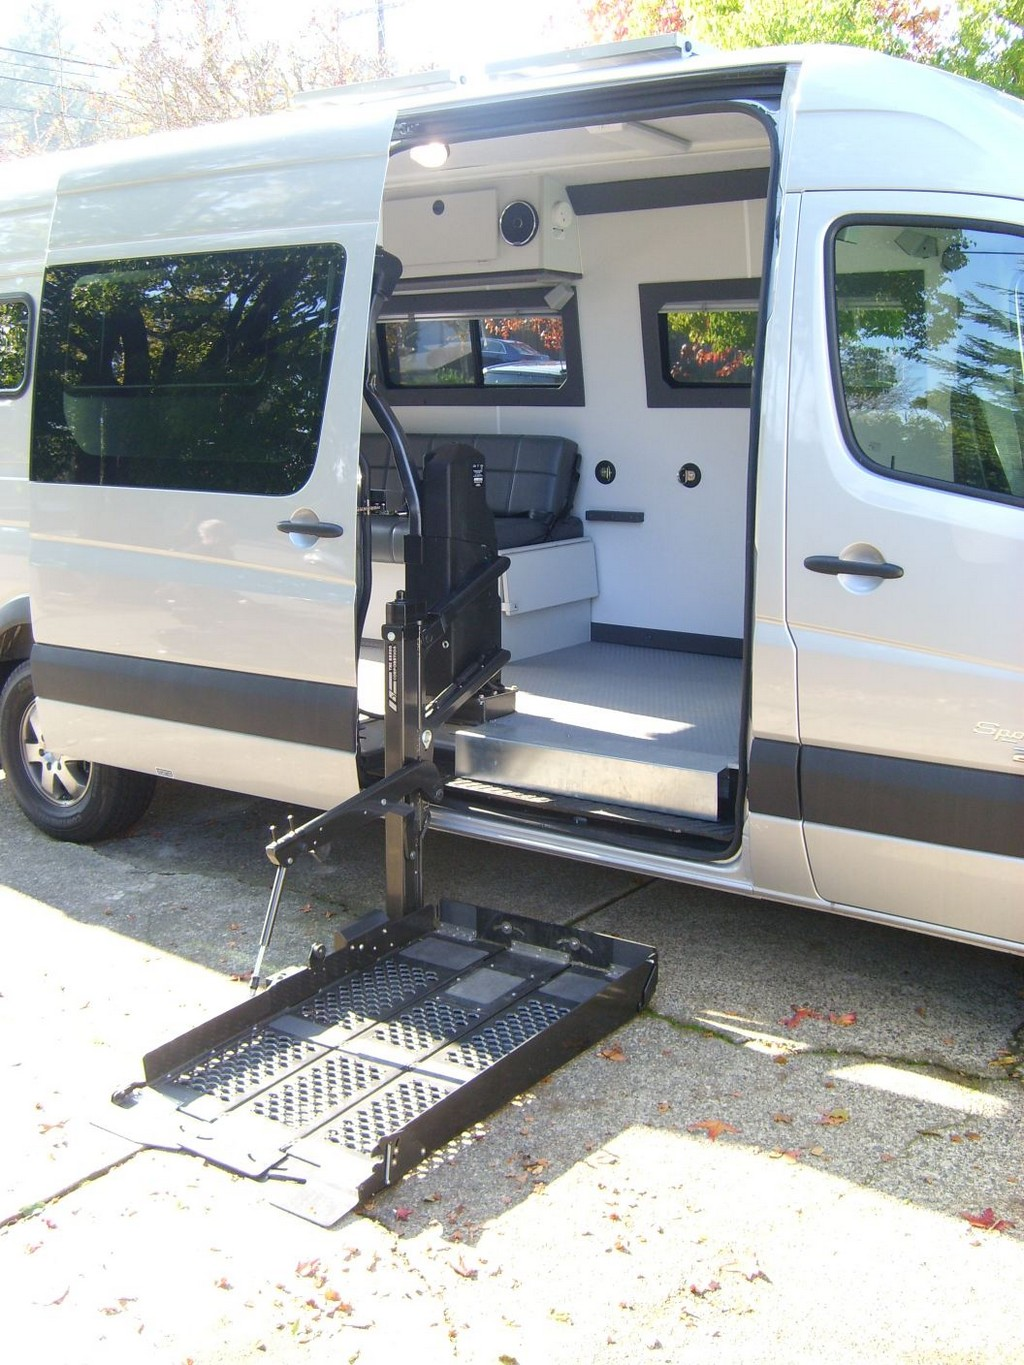 used wheel chair lifts for house, lift wheel chair, wheel chair lifts for sale, donated wheelchair lifts